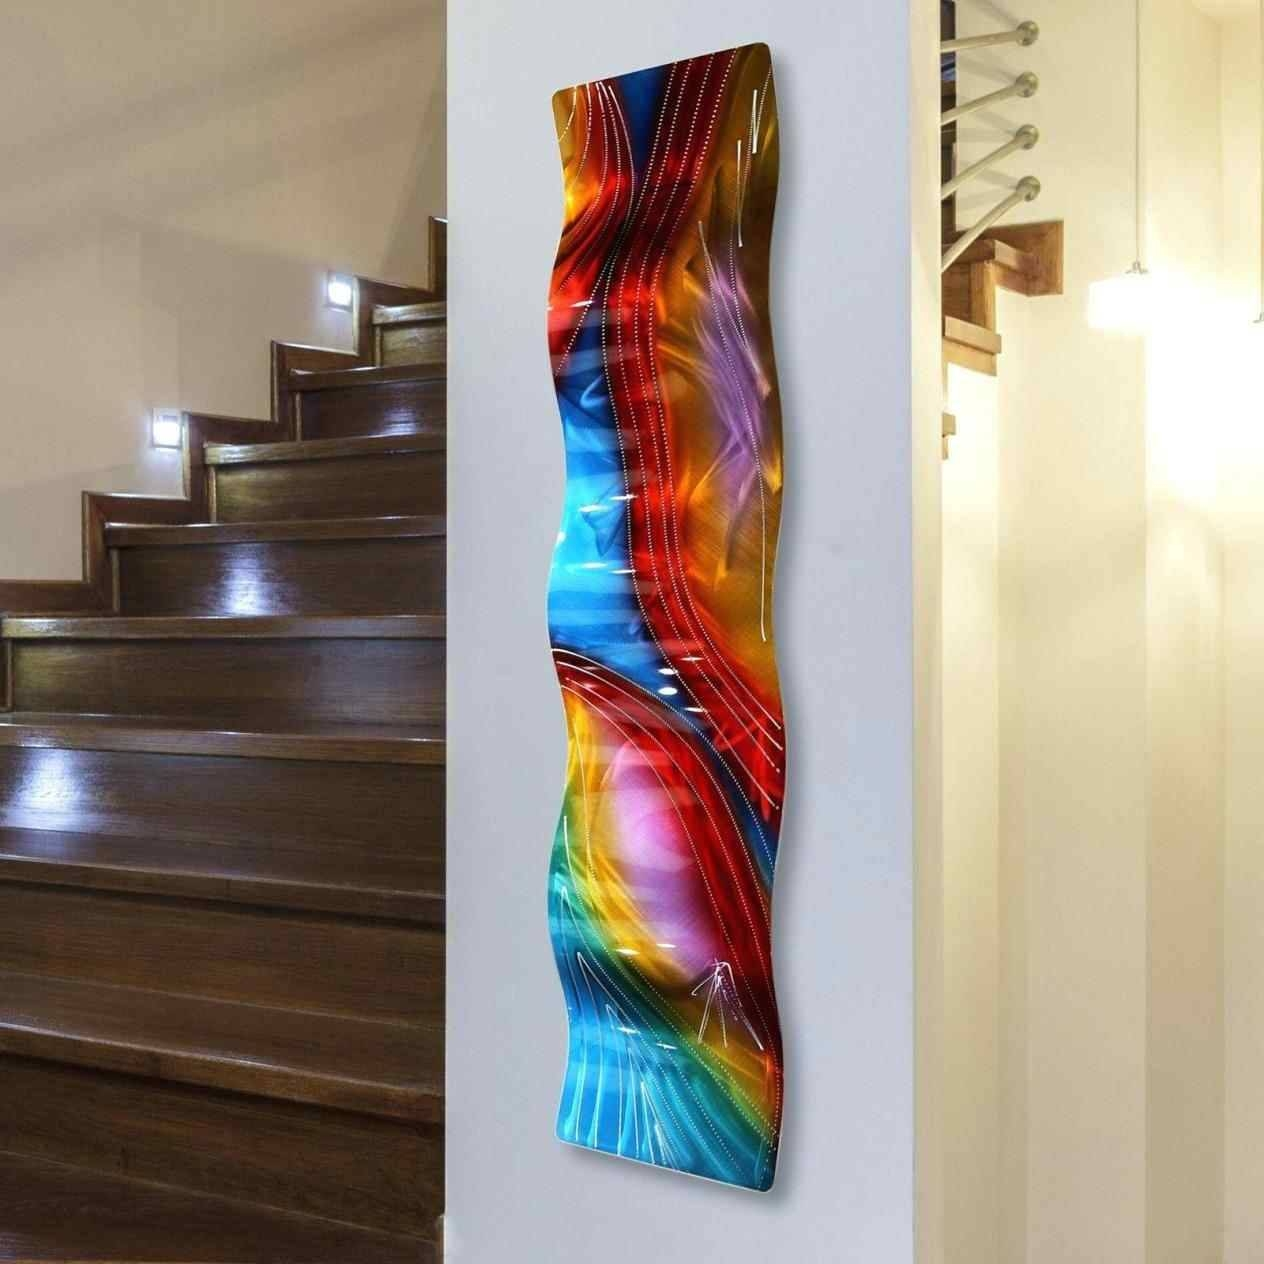 Contemporary Geometric Metal Wall Decor Multi Color Circular Within Most Up To Date Multi Color Metal Wall Art (View 2 of 20)